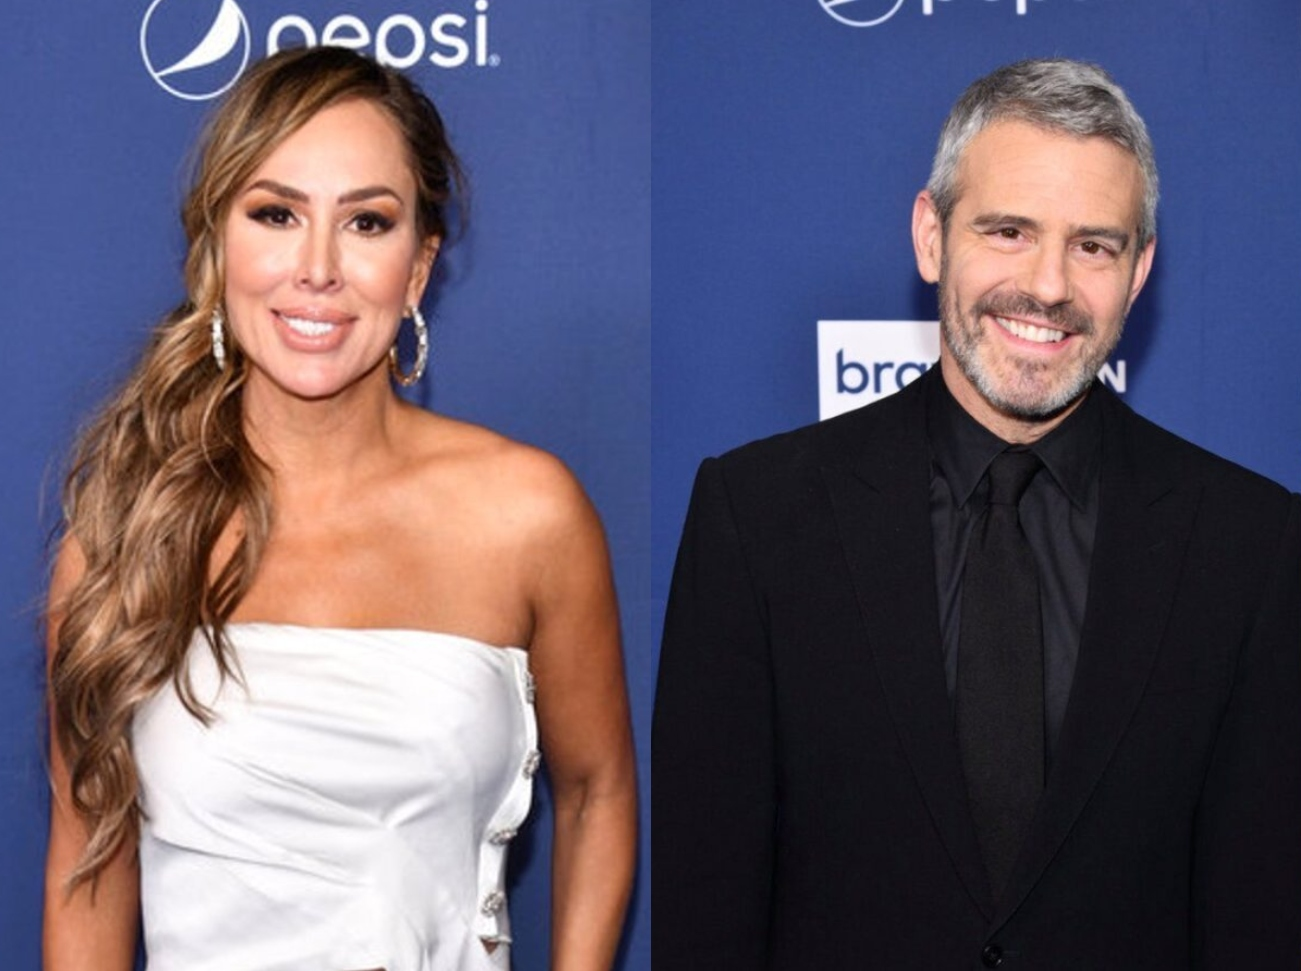 Kelly Dodd calls out Andy Cohen to say she's on the wrong side of the story, RHOC Alum insists she's right